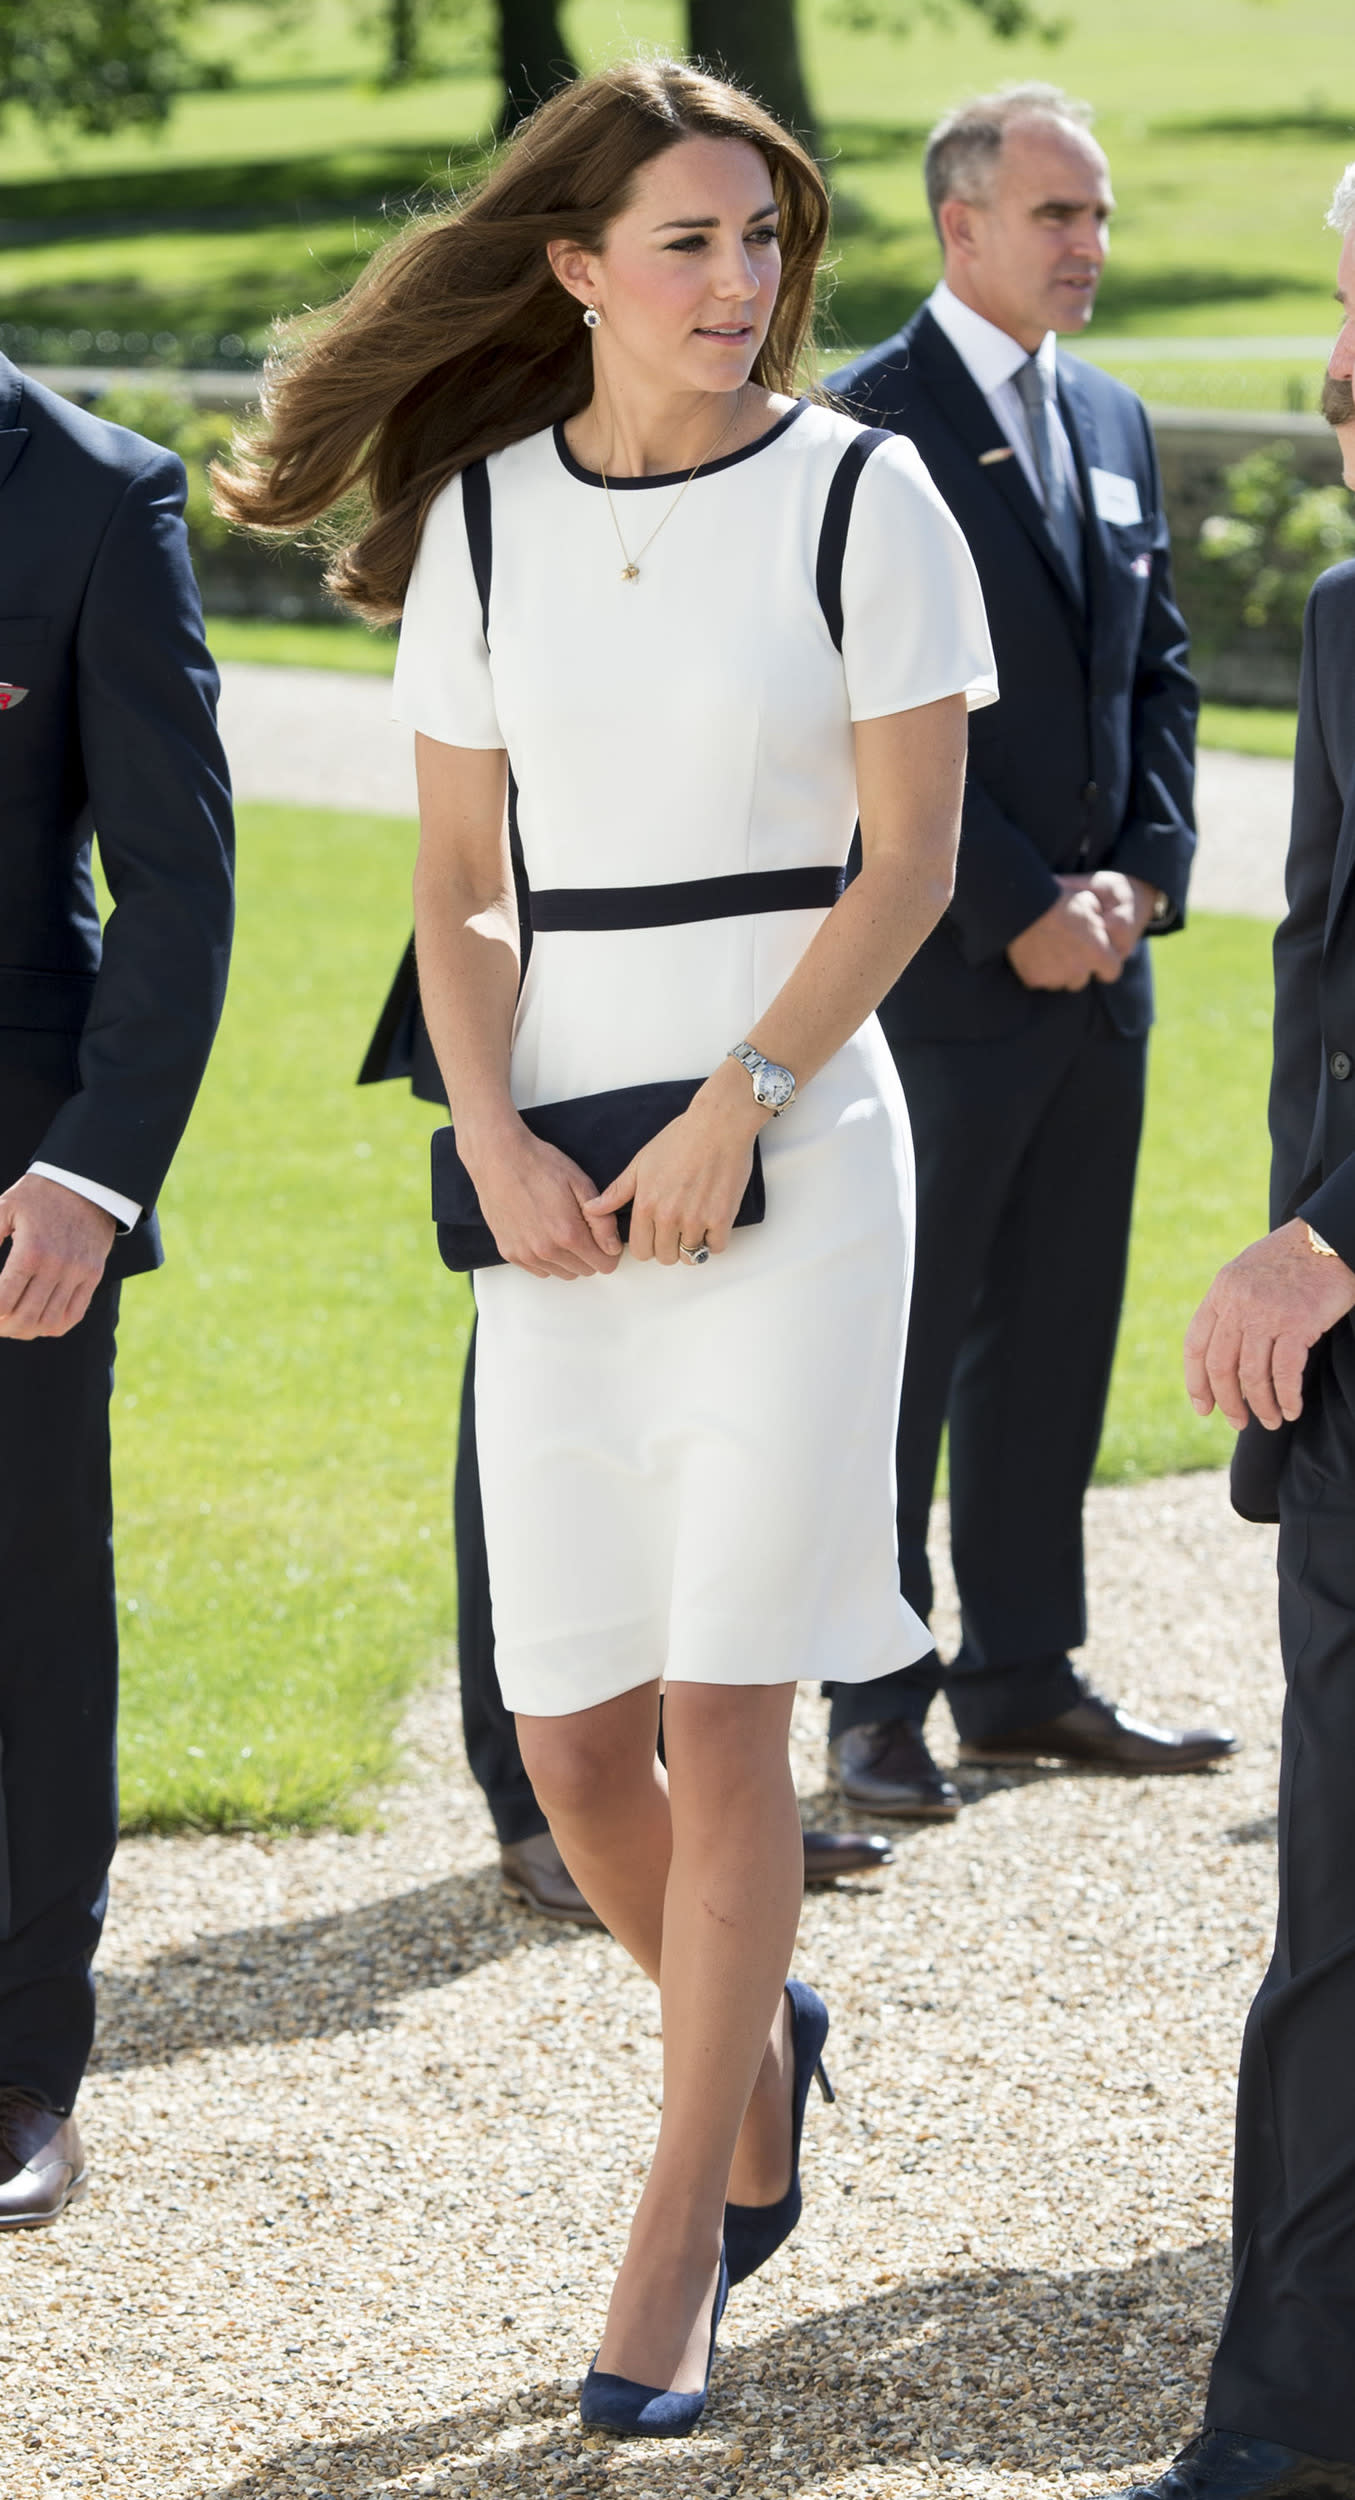 The Duchess of Cambridge during an official visit to National Maritime Museum on June 10, 2014 in London, England.